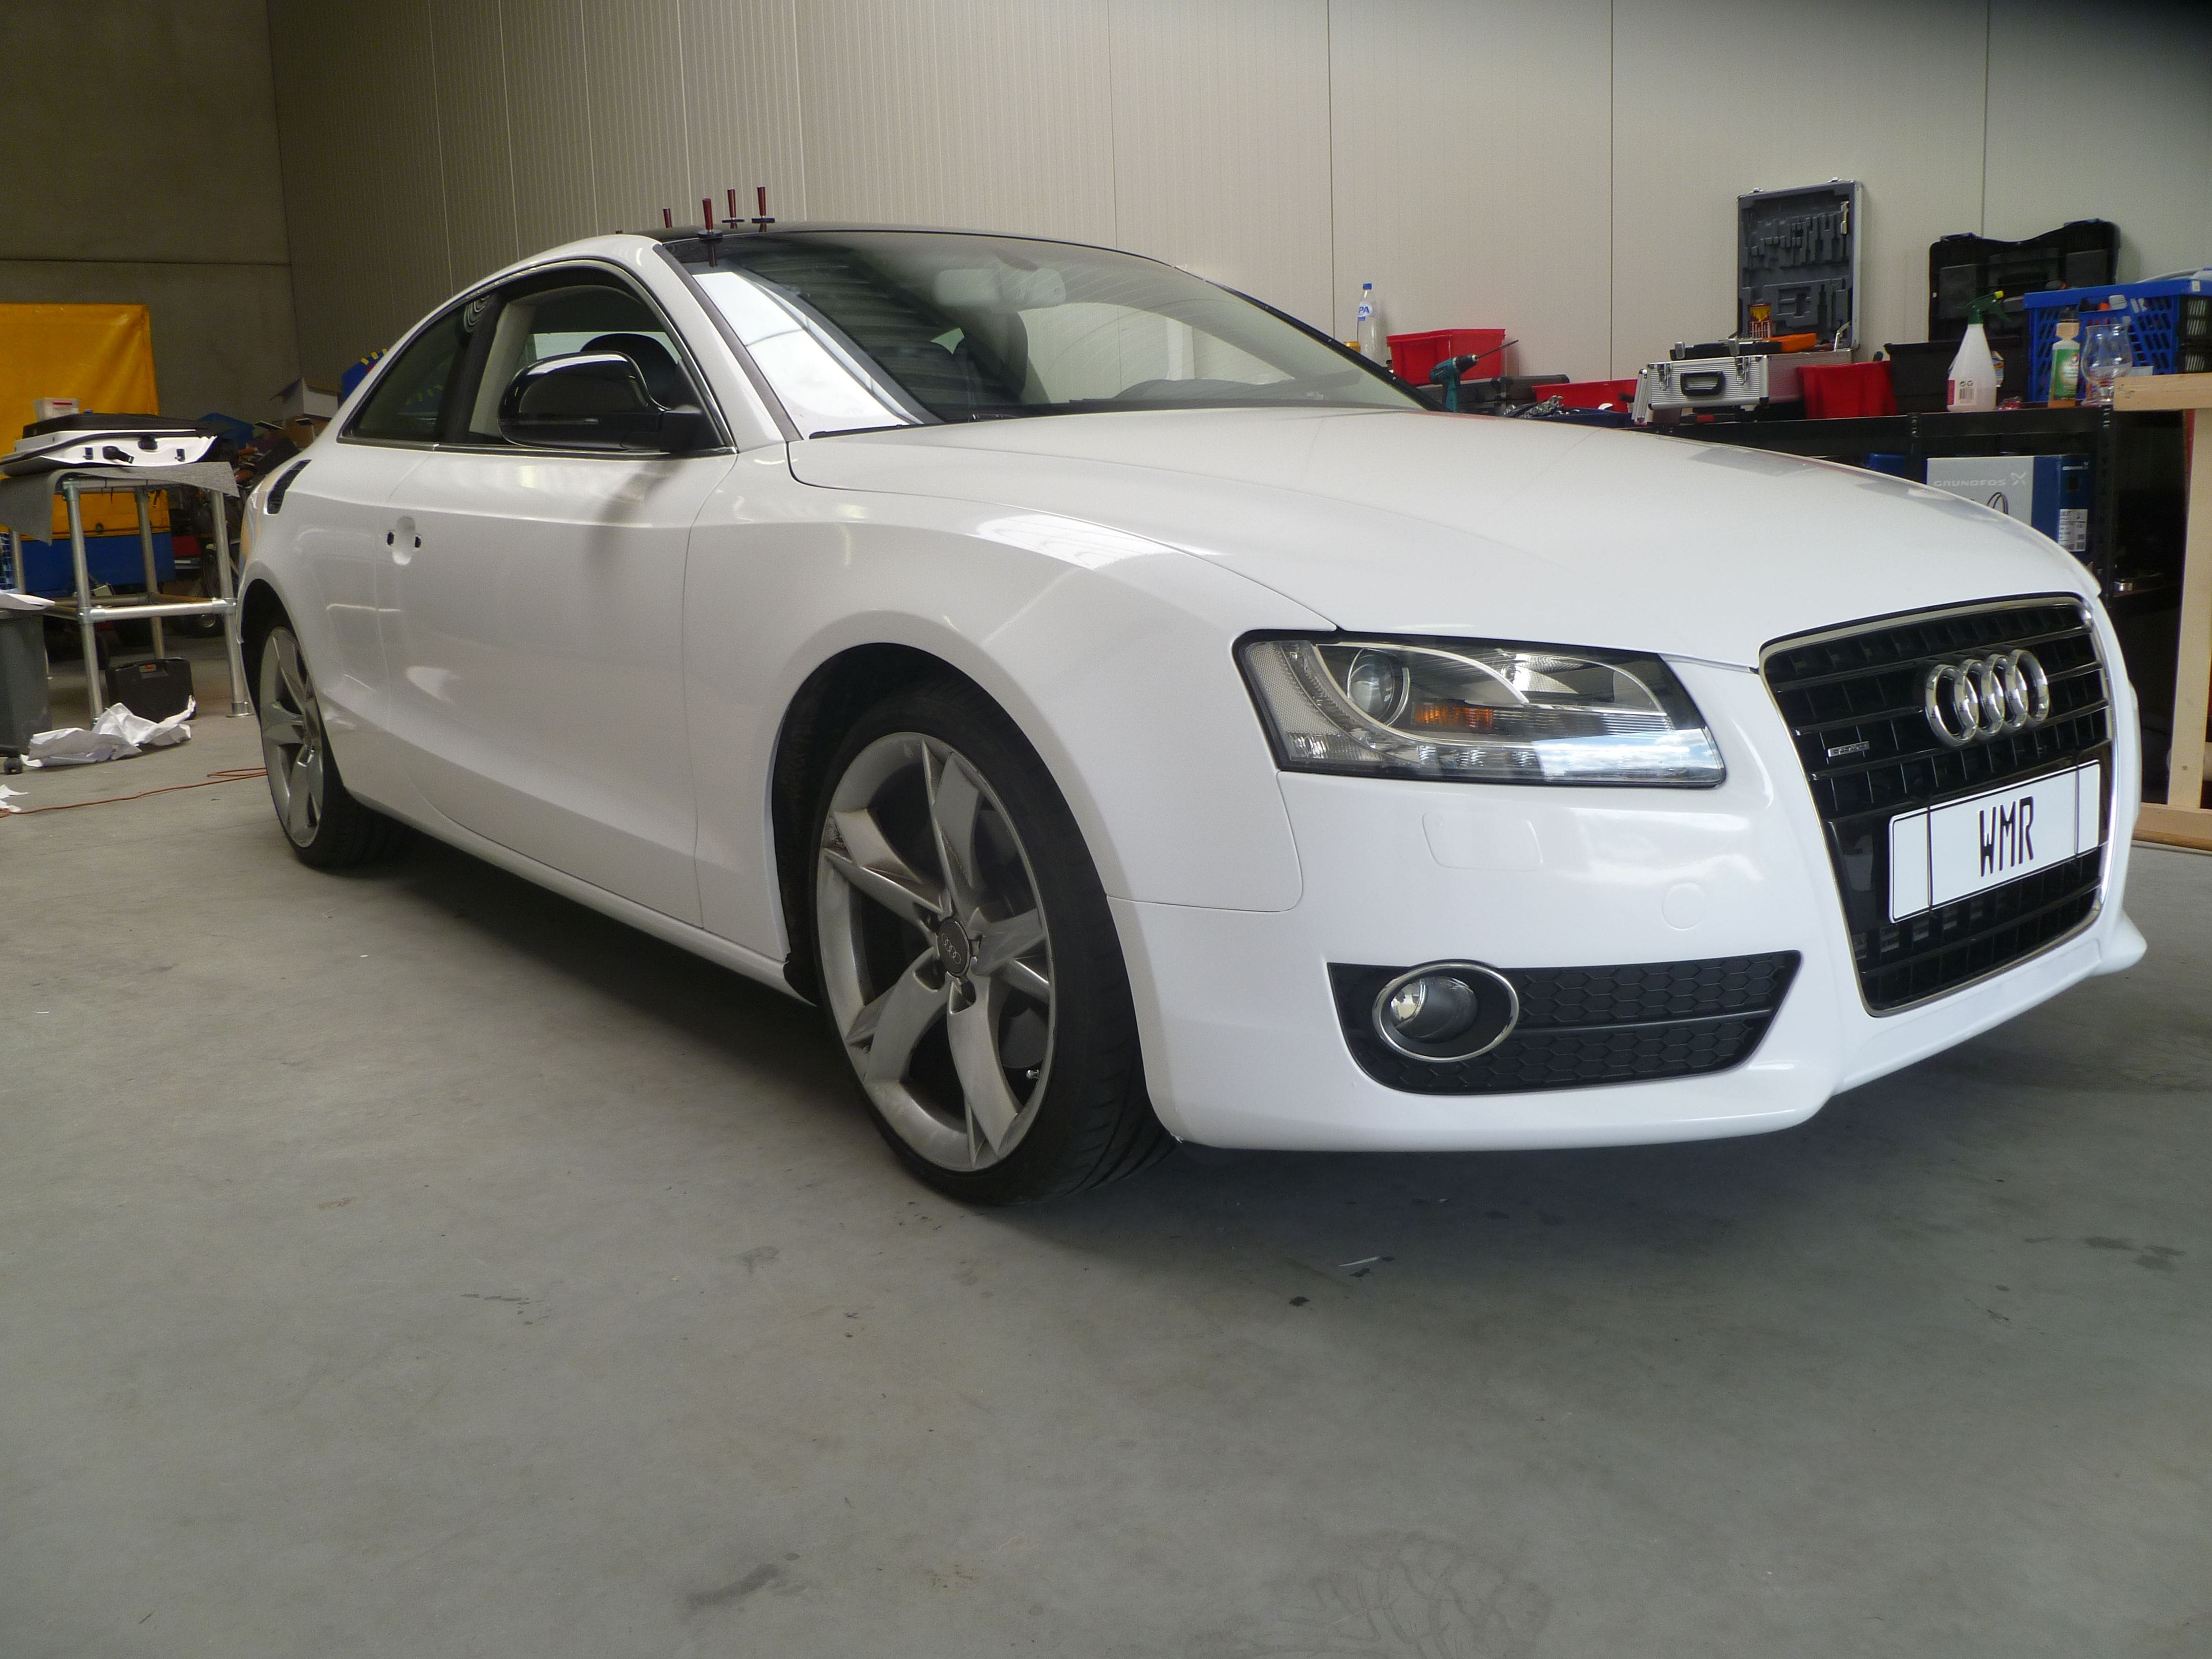 Audi A5 coupe met Metallic Witte Wrap, Carwrapping door Wrapmyride.nu Foto-nr:4725, ©2020